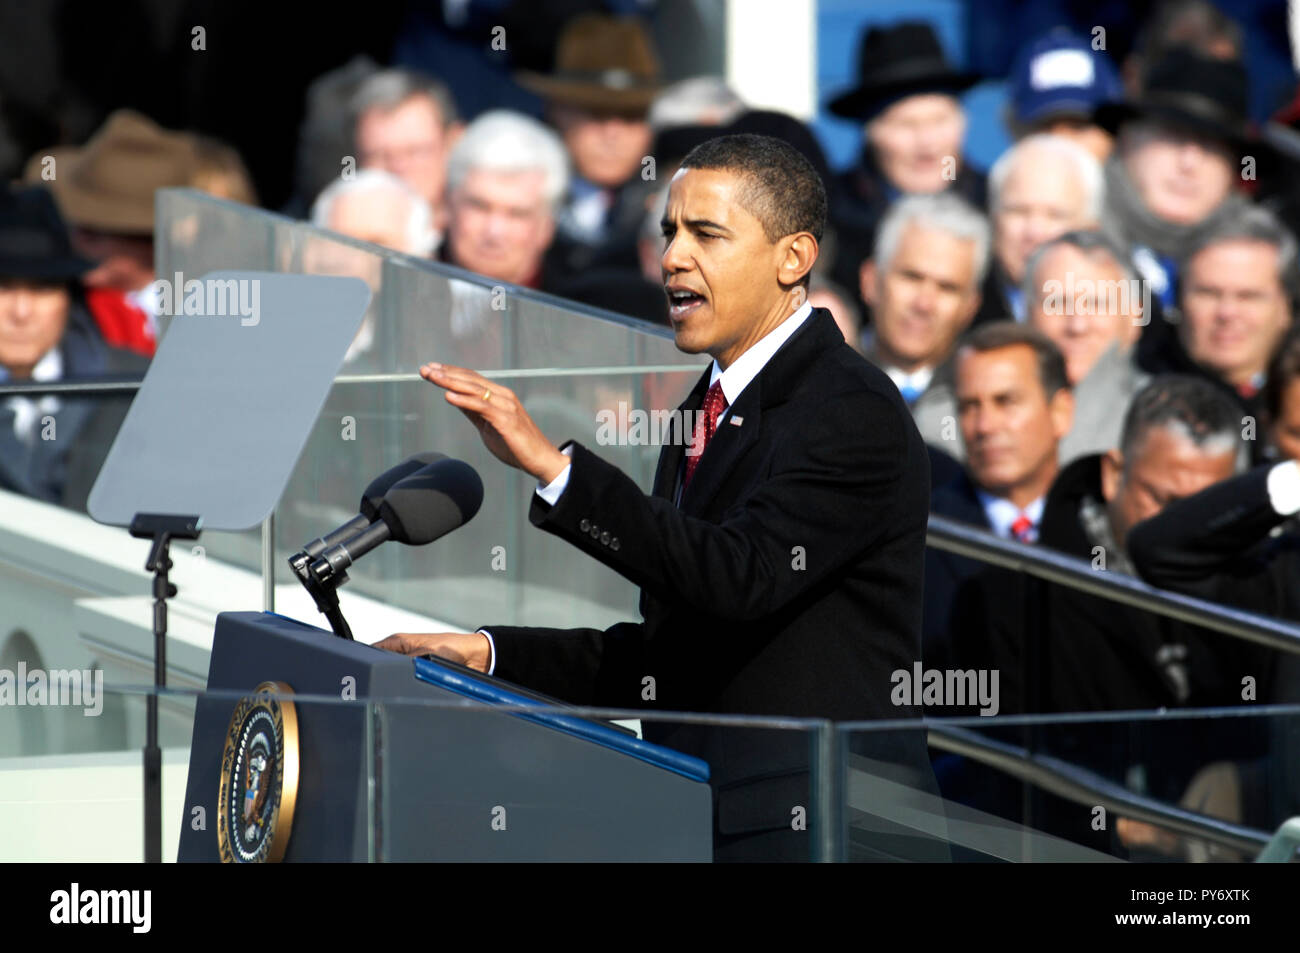 President Barack Obama delivers his inaugural address in Washington, D.C., Jan. 20, 2009. DoD photo by Master Sgt. Cecilio Ricardo, U.S. Air Force Stock Photo